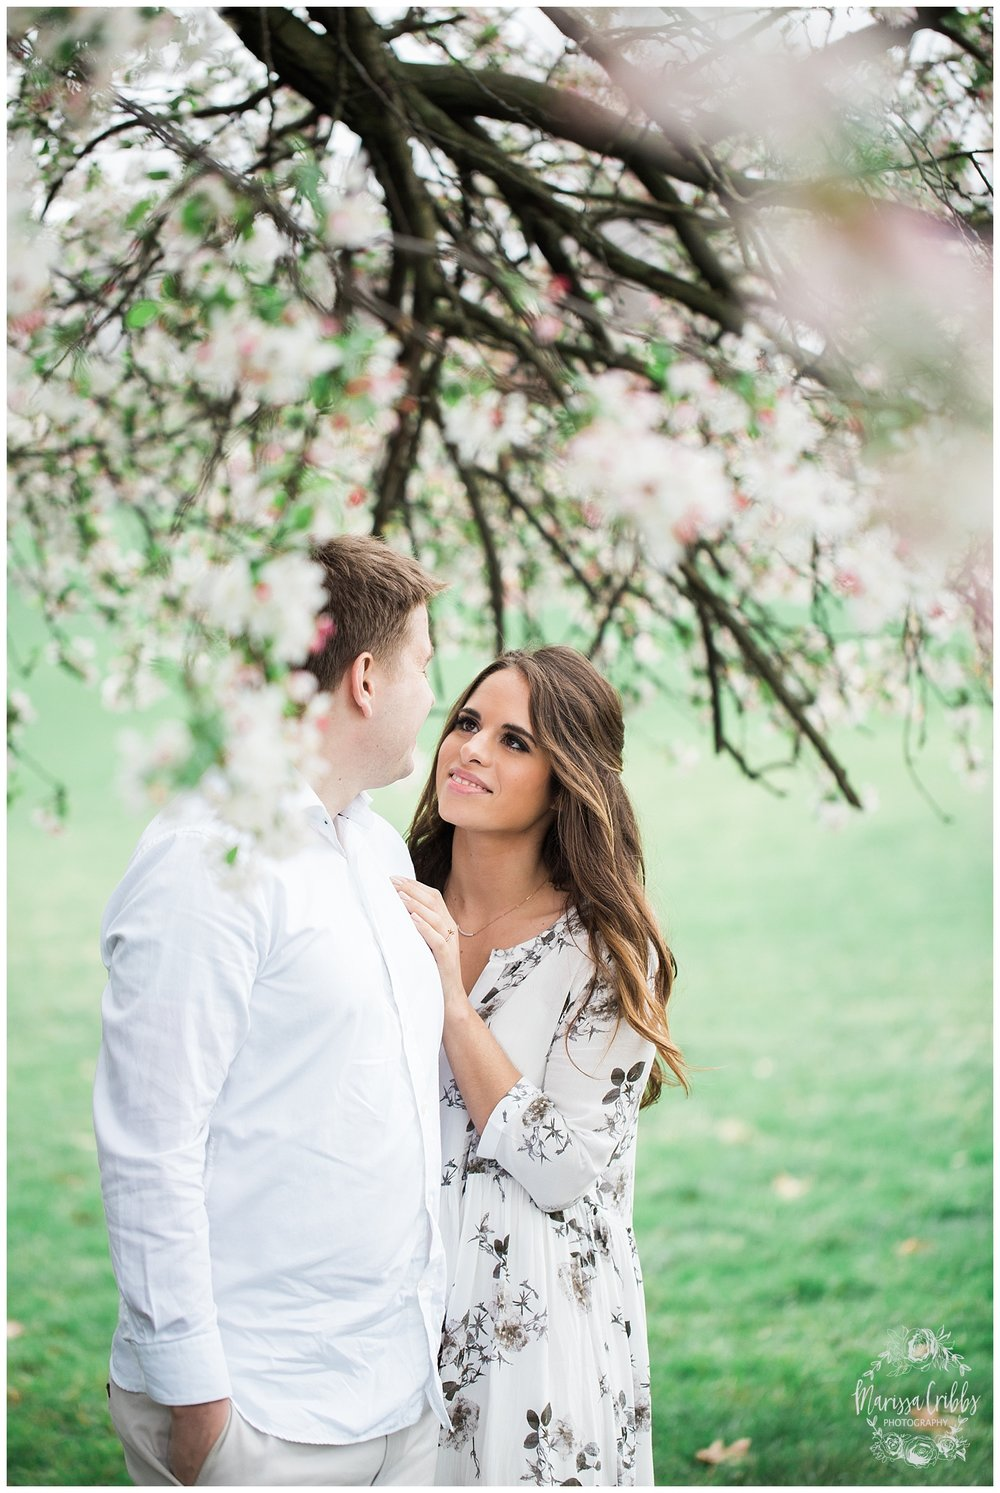 Loose Park Photography | KC Photographers | Marissa Cribbs Photography | KC Wedding Photographers_0644.jpg